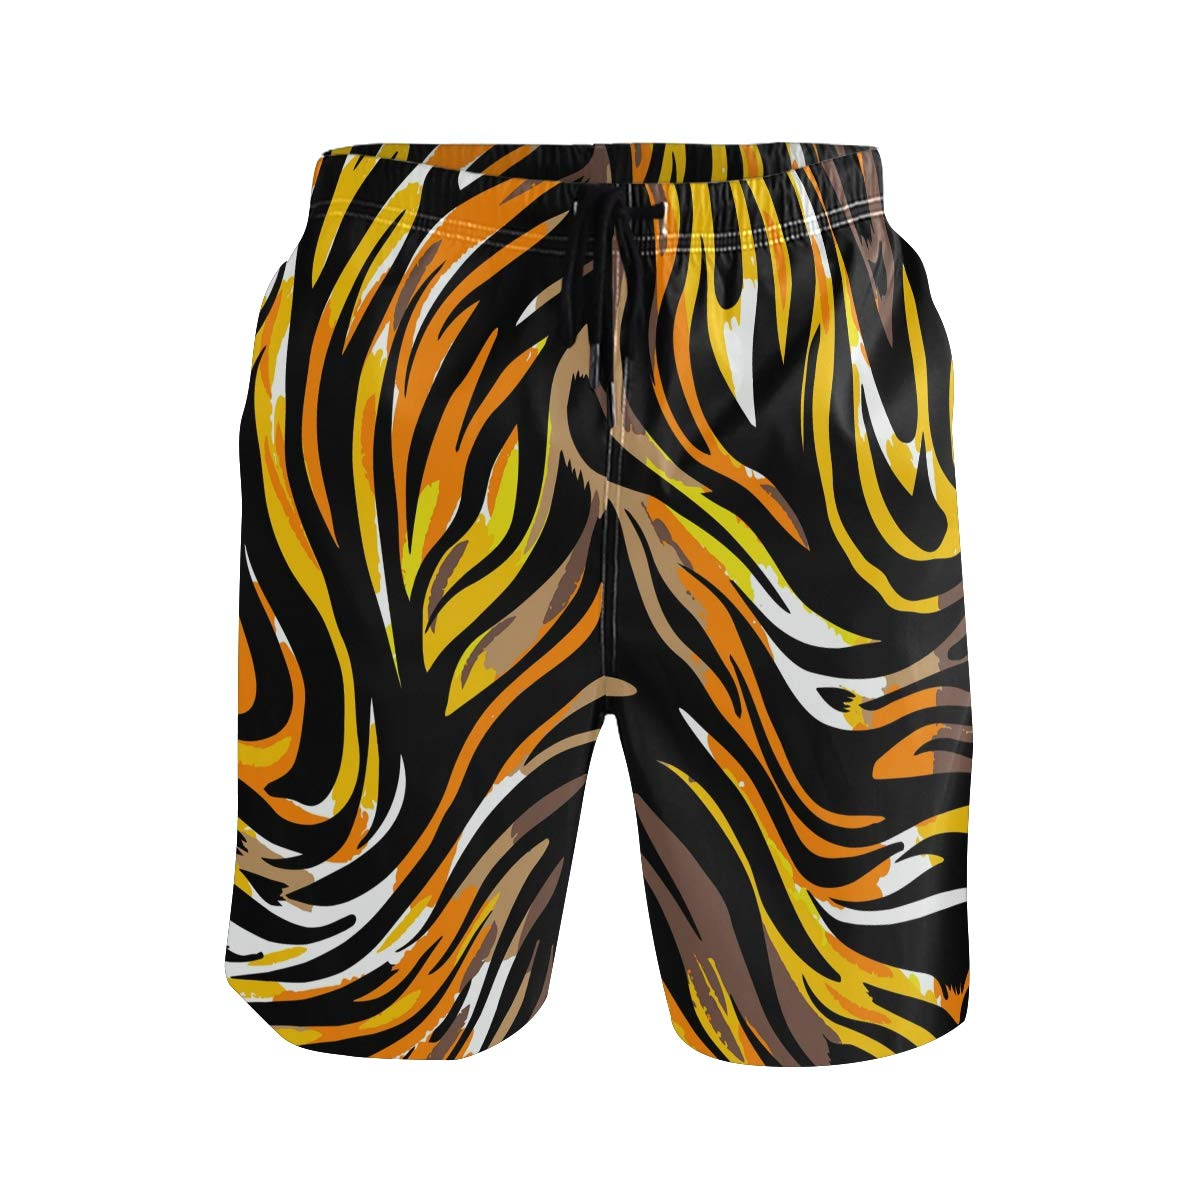 JERECY Mens Swim Trunks Geometric Tiger Skin Pattern Quick Dry Board Shorts with Drawstring and Pockets